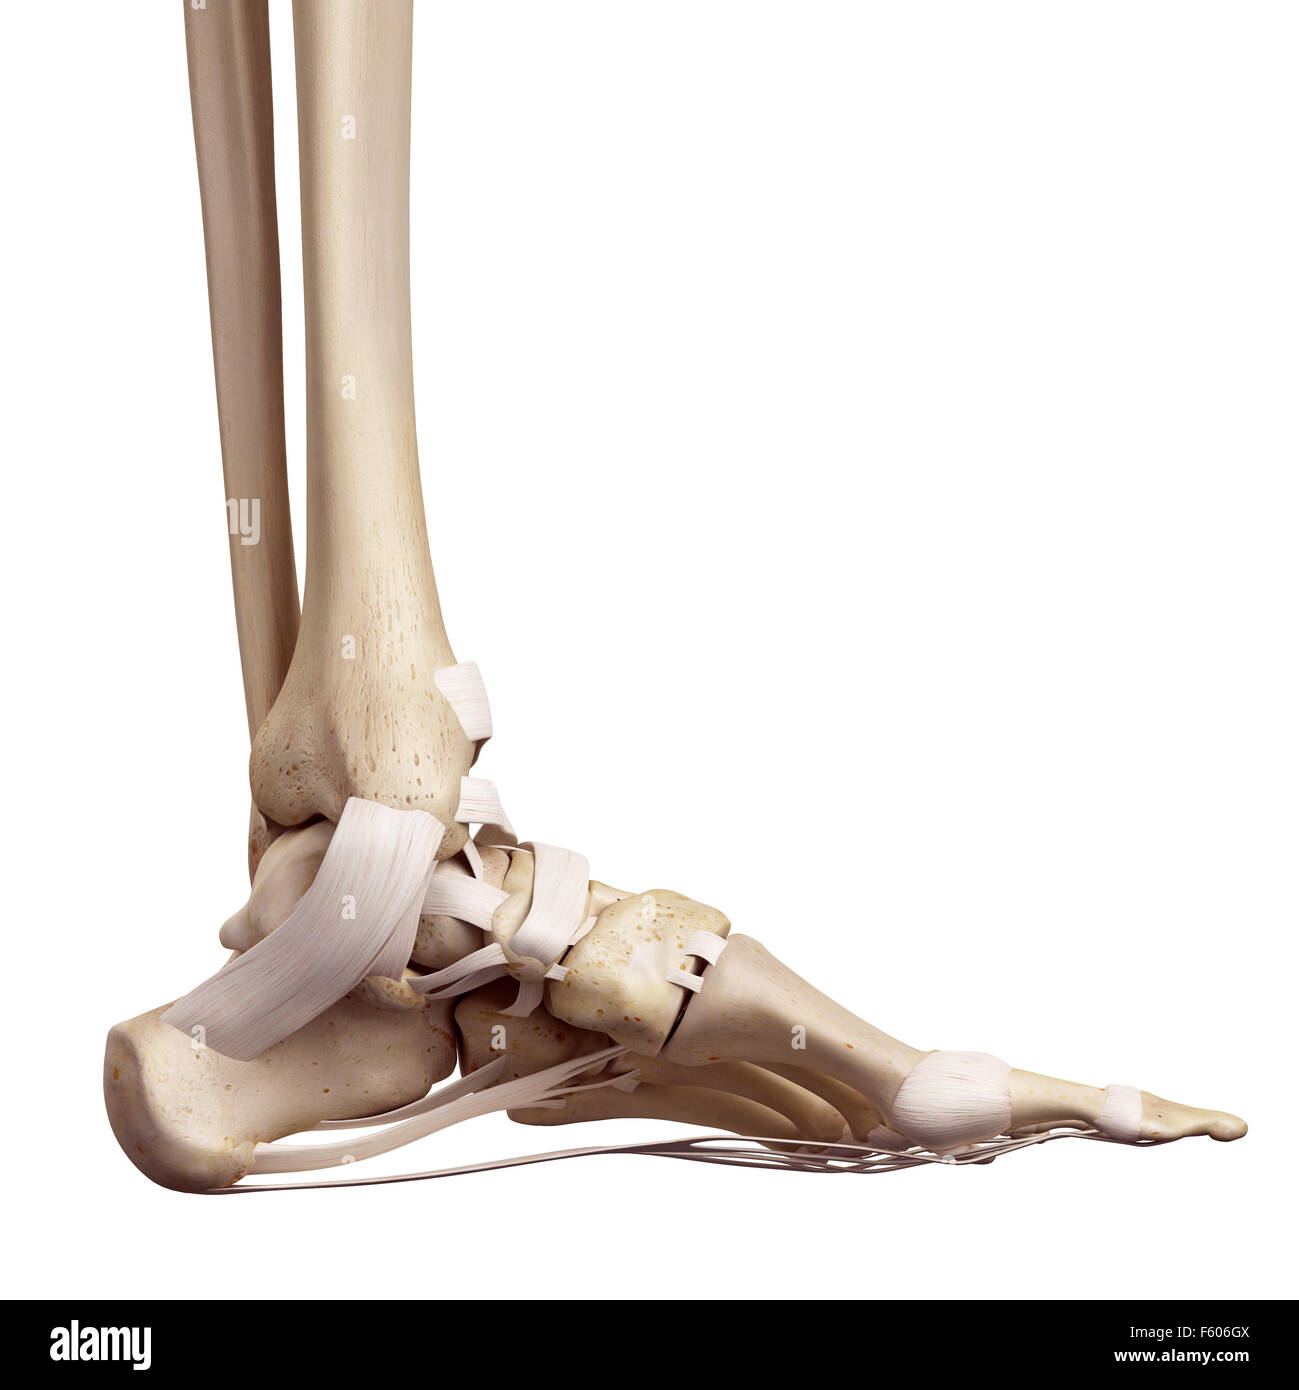 Foot Ligament Imágenes De Stock & Foot Ligament Fotos De Stock - Alamy